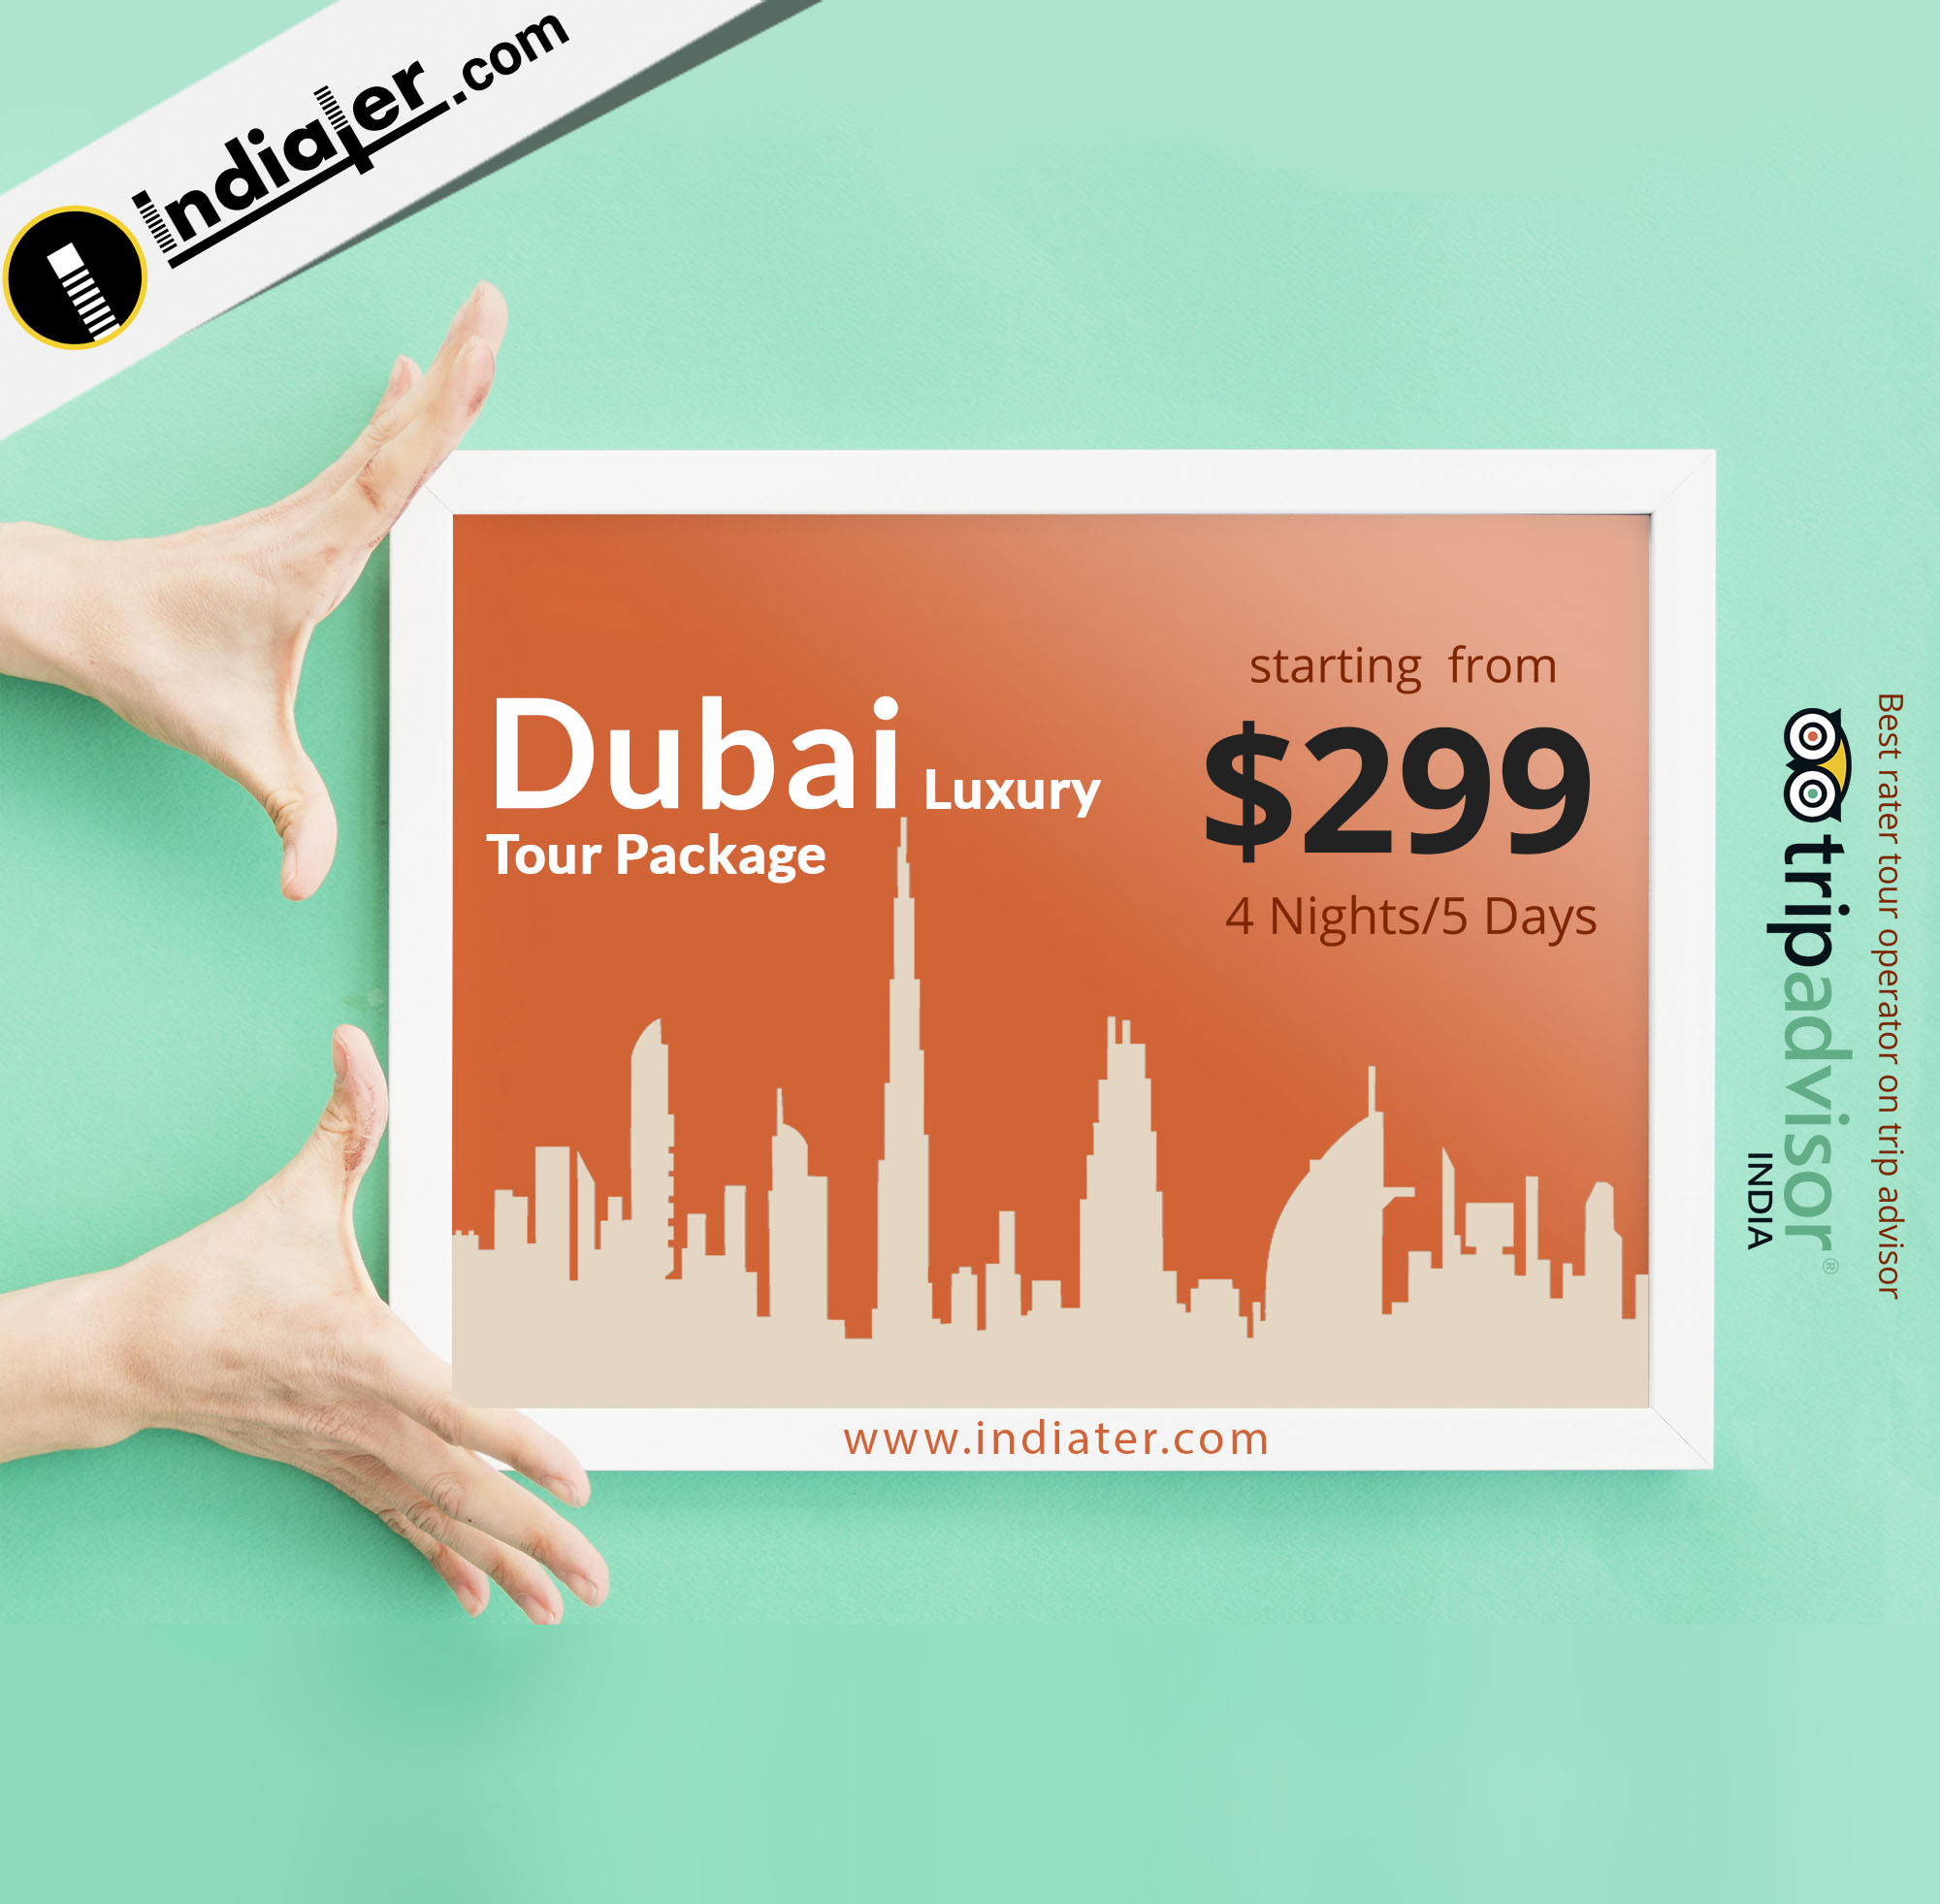 Dubai Luxury Tour Packages travel banner PSD